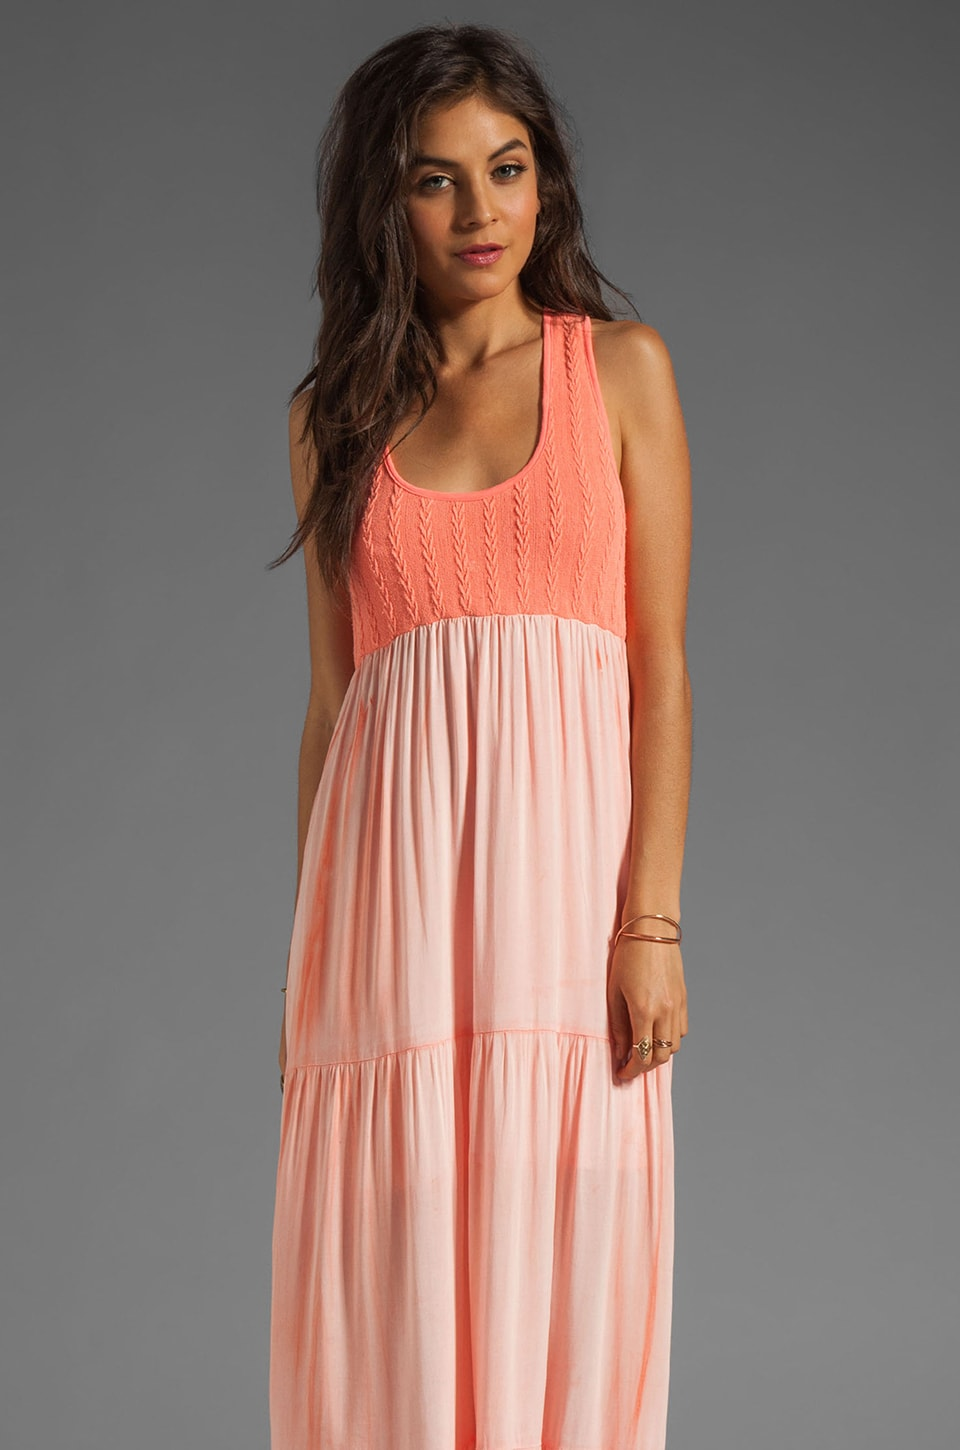 WOODLEIGH Blayke Maxi in Bright Coral